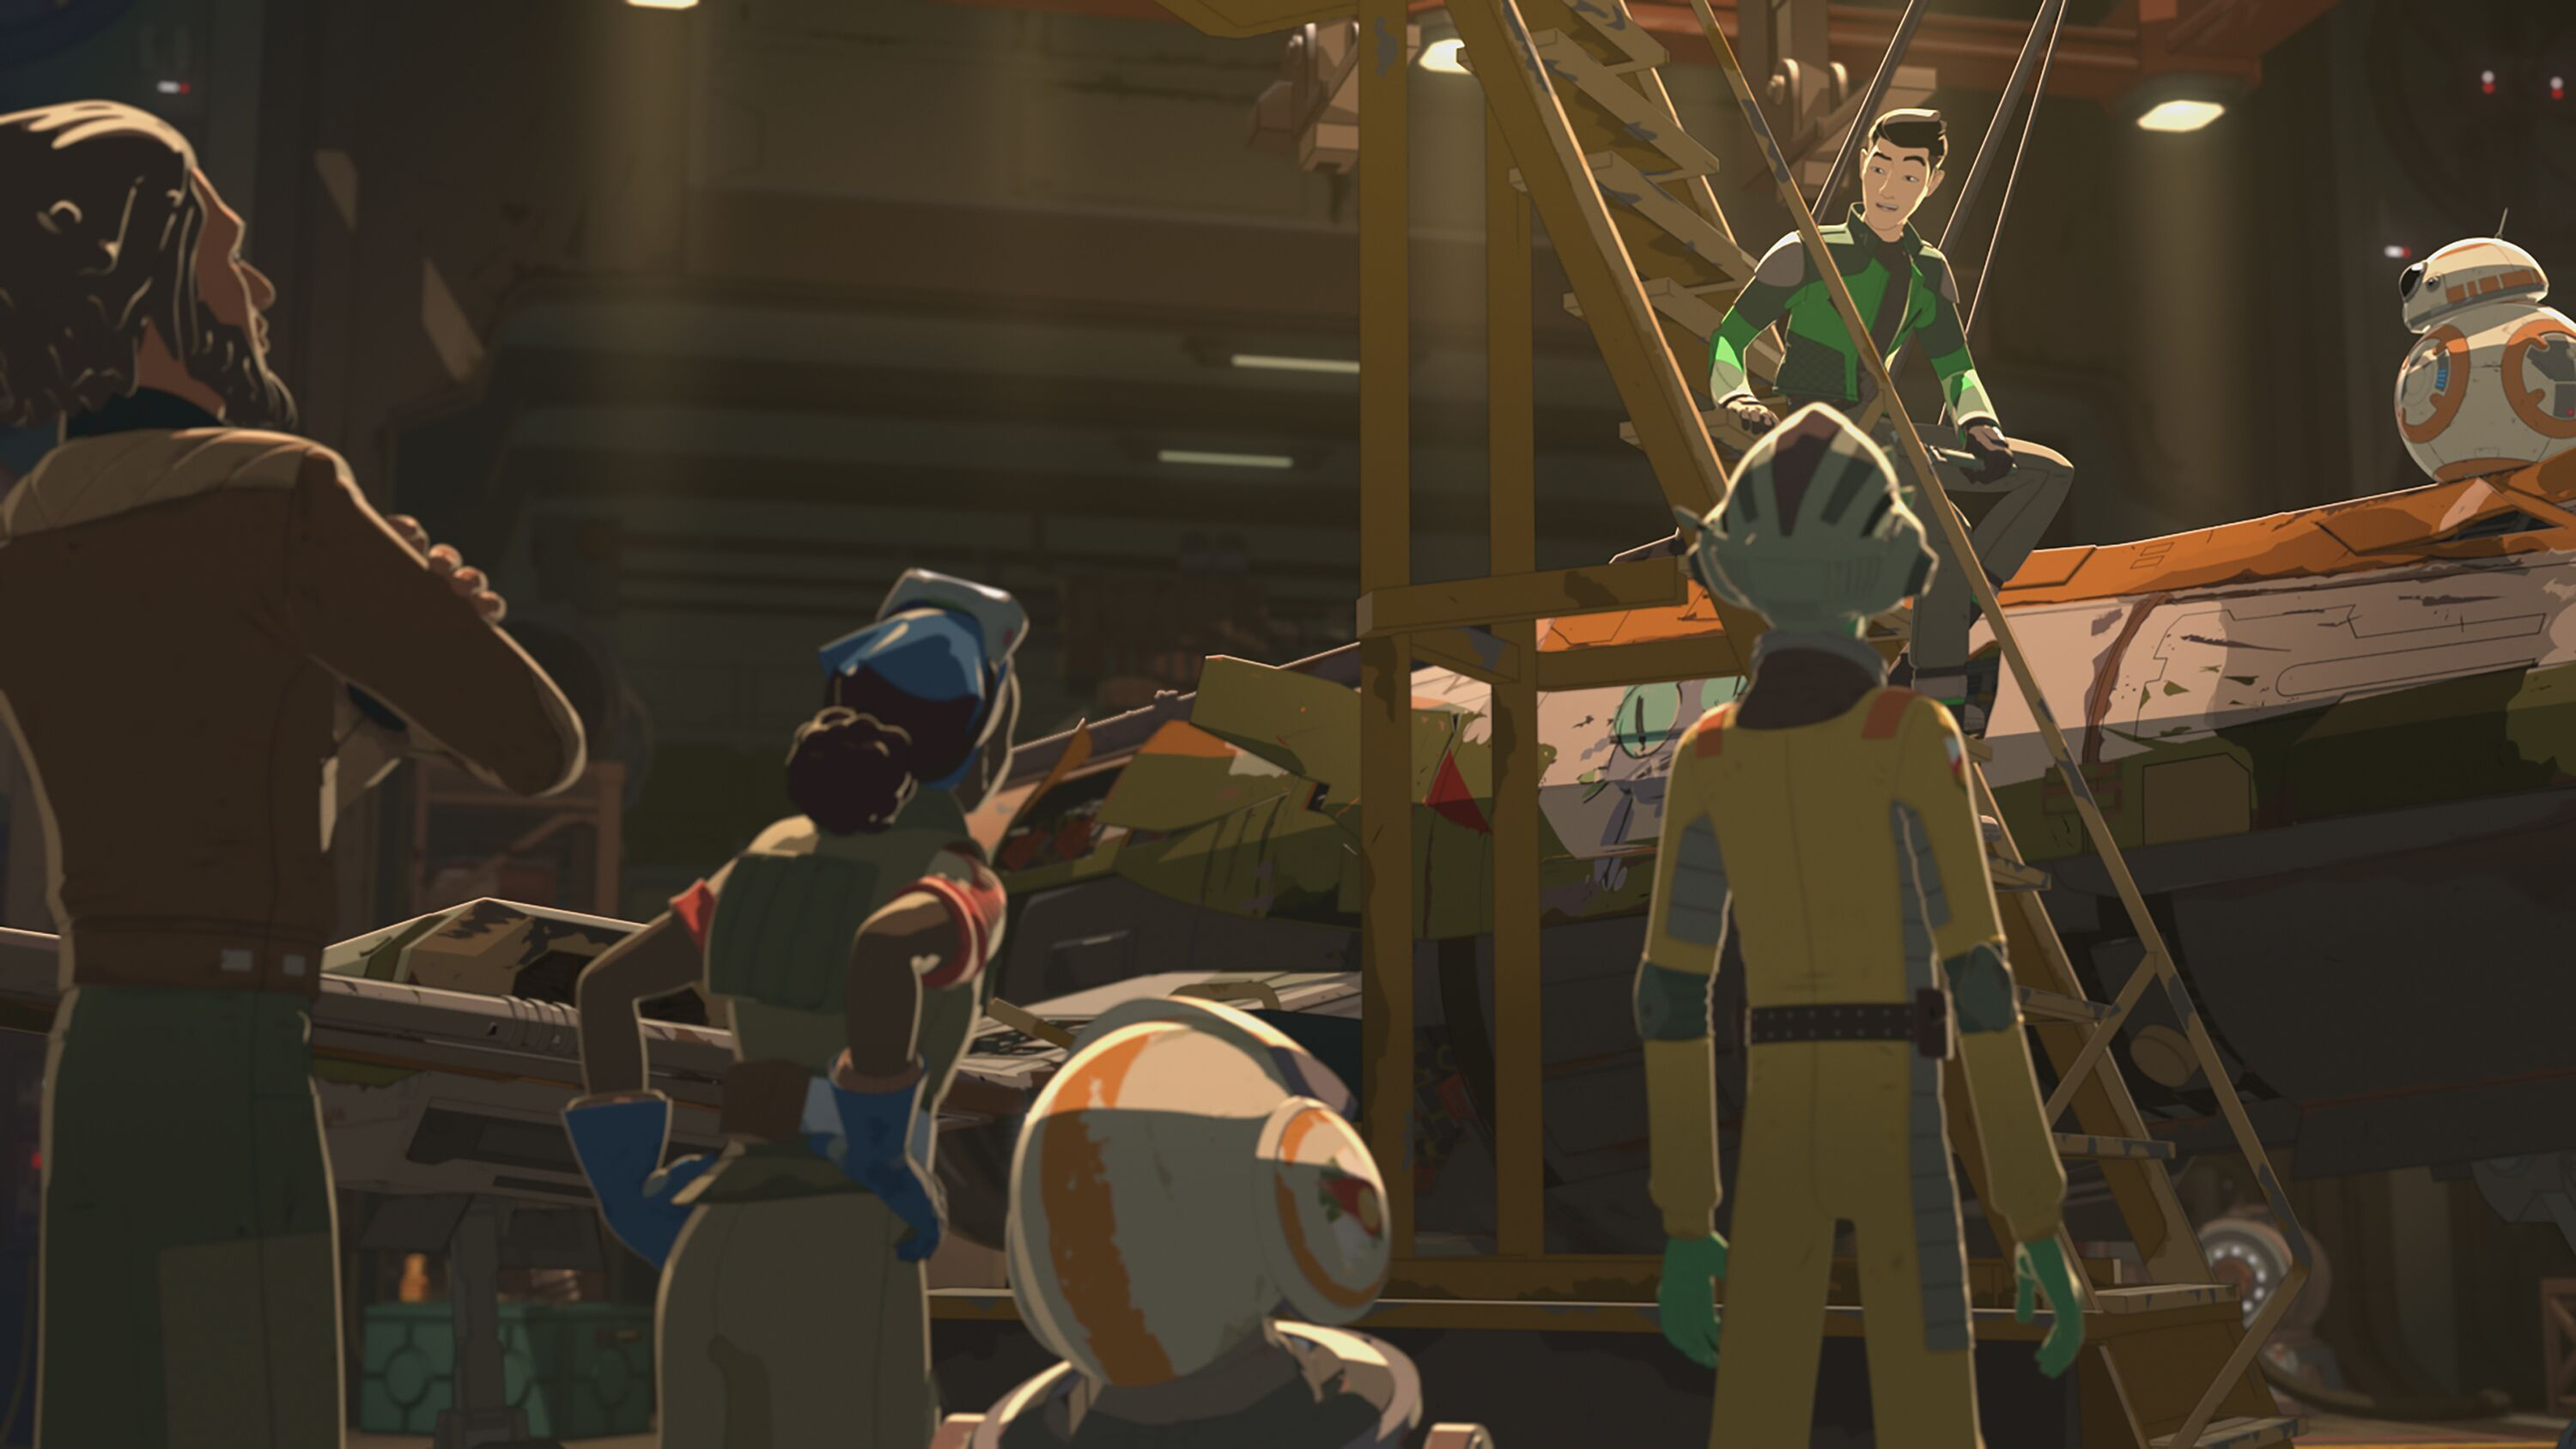 Fans debate over the animation in Star Wars: Resistance